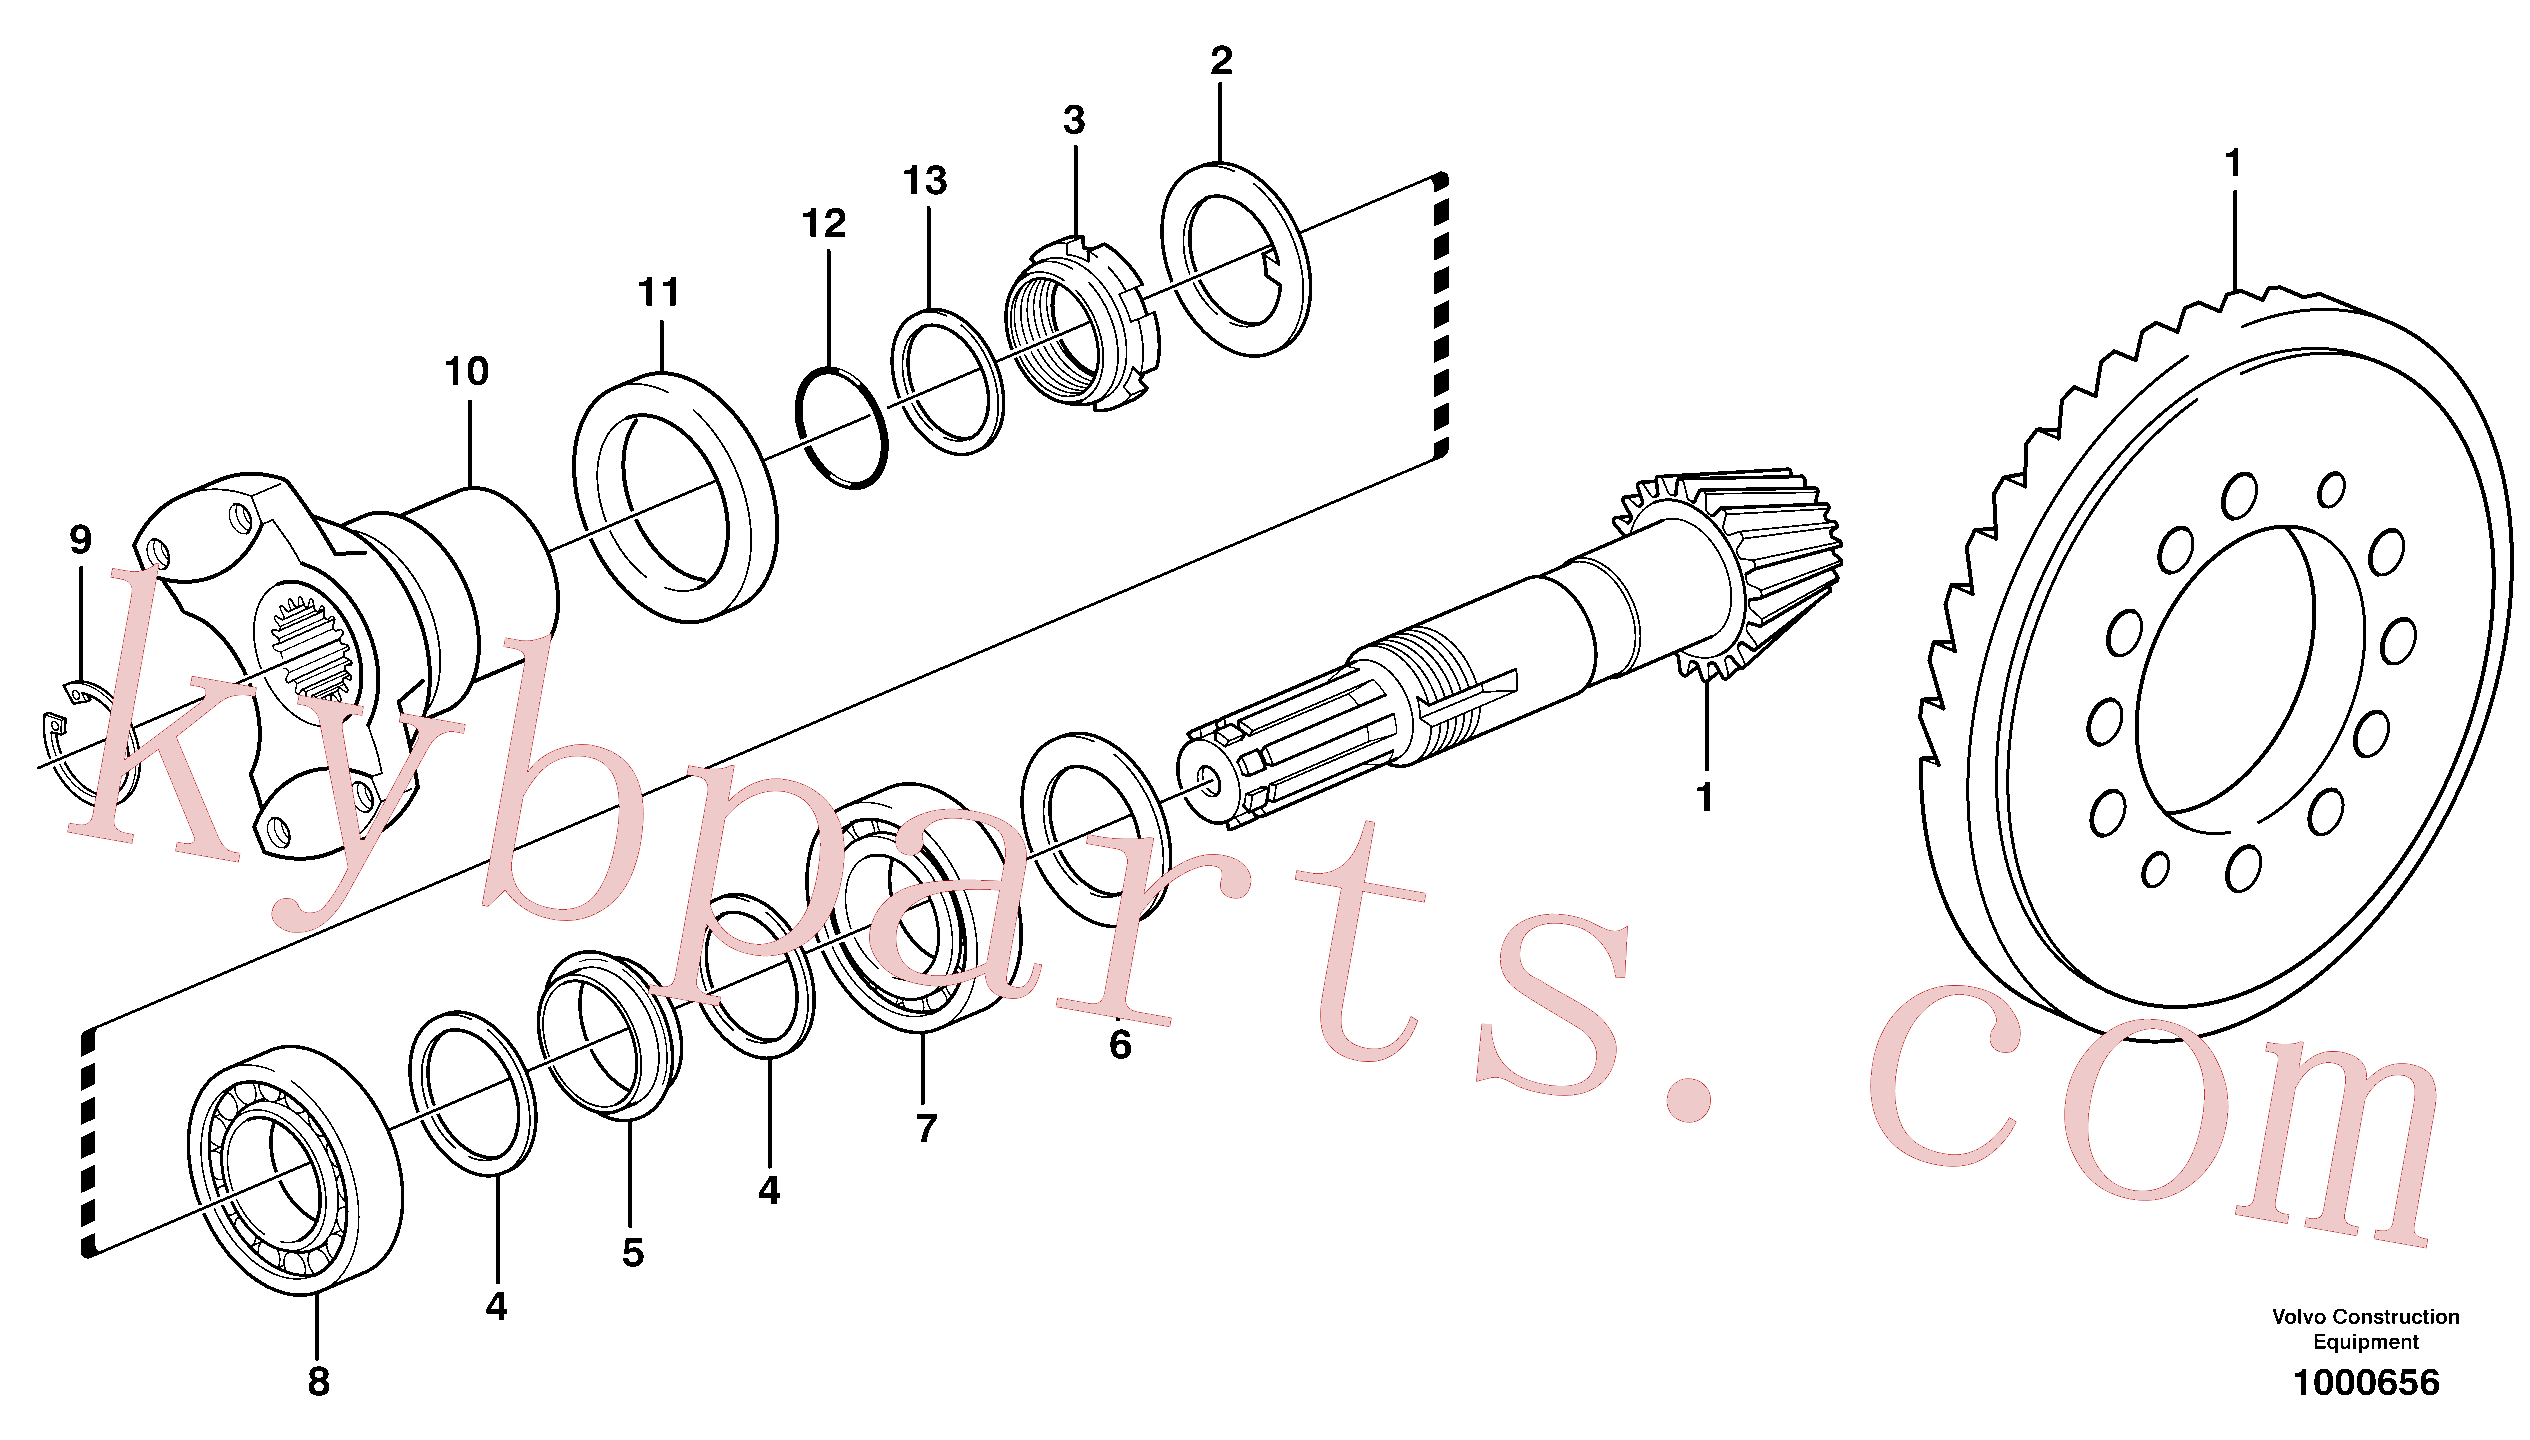 VOE11709288 for Volvo Pinion(1000656 assembly)